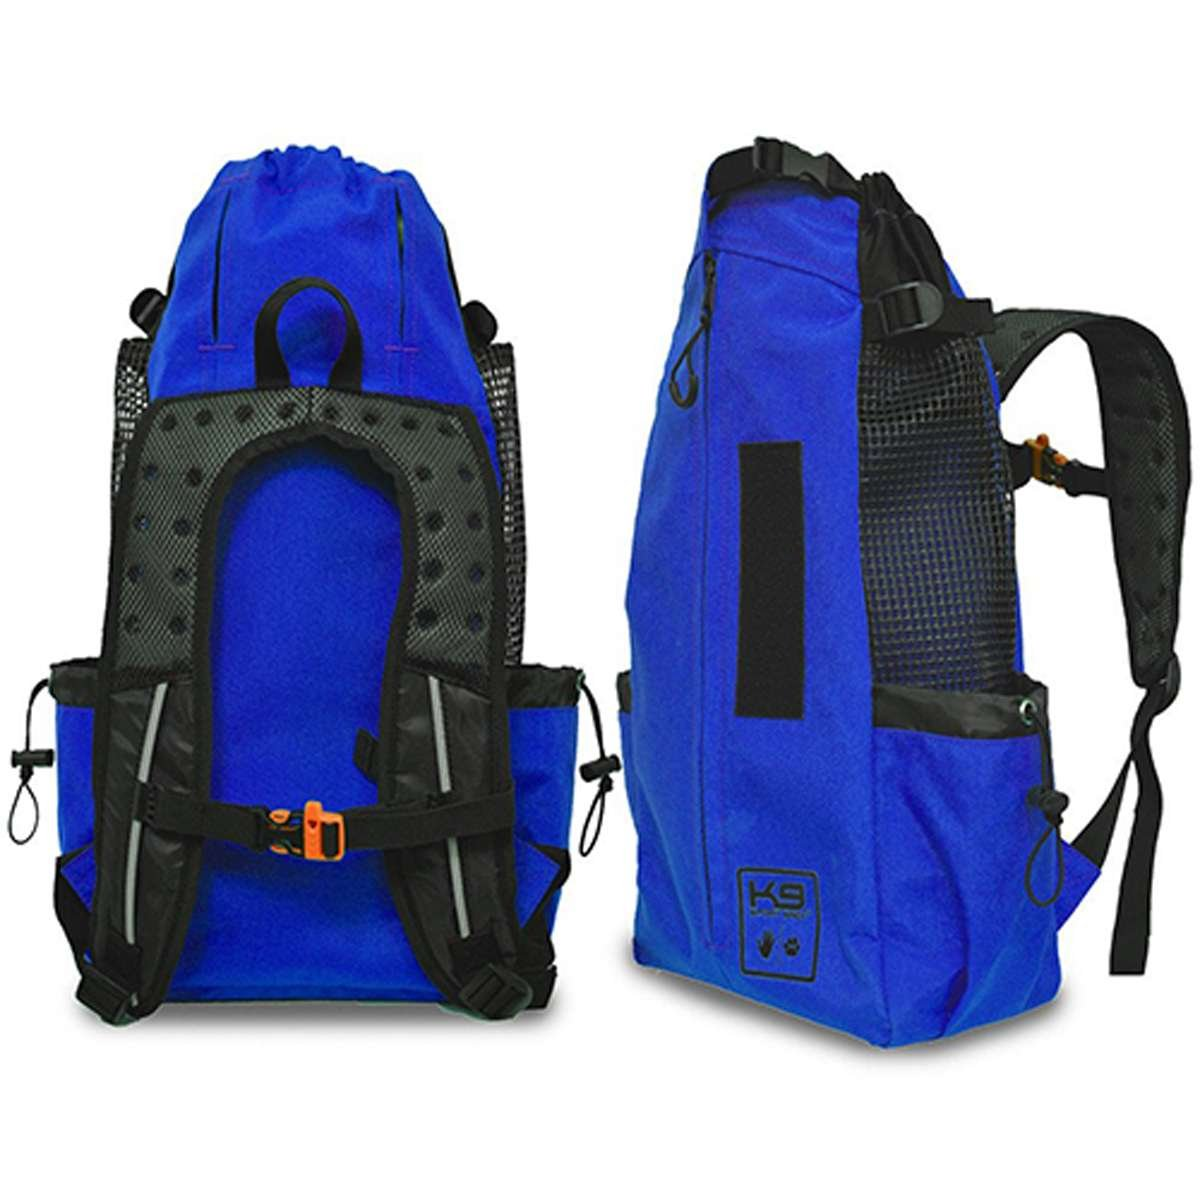 K9 SPORT SACK AIR IN COBALT BLUE